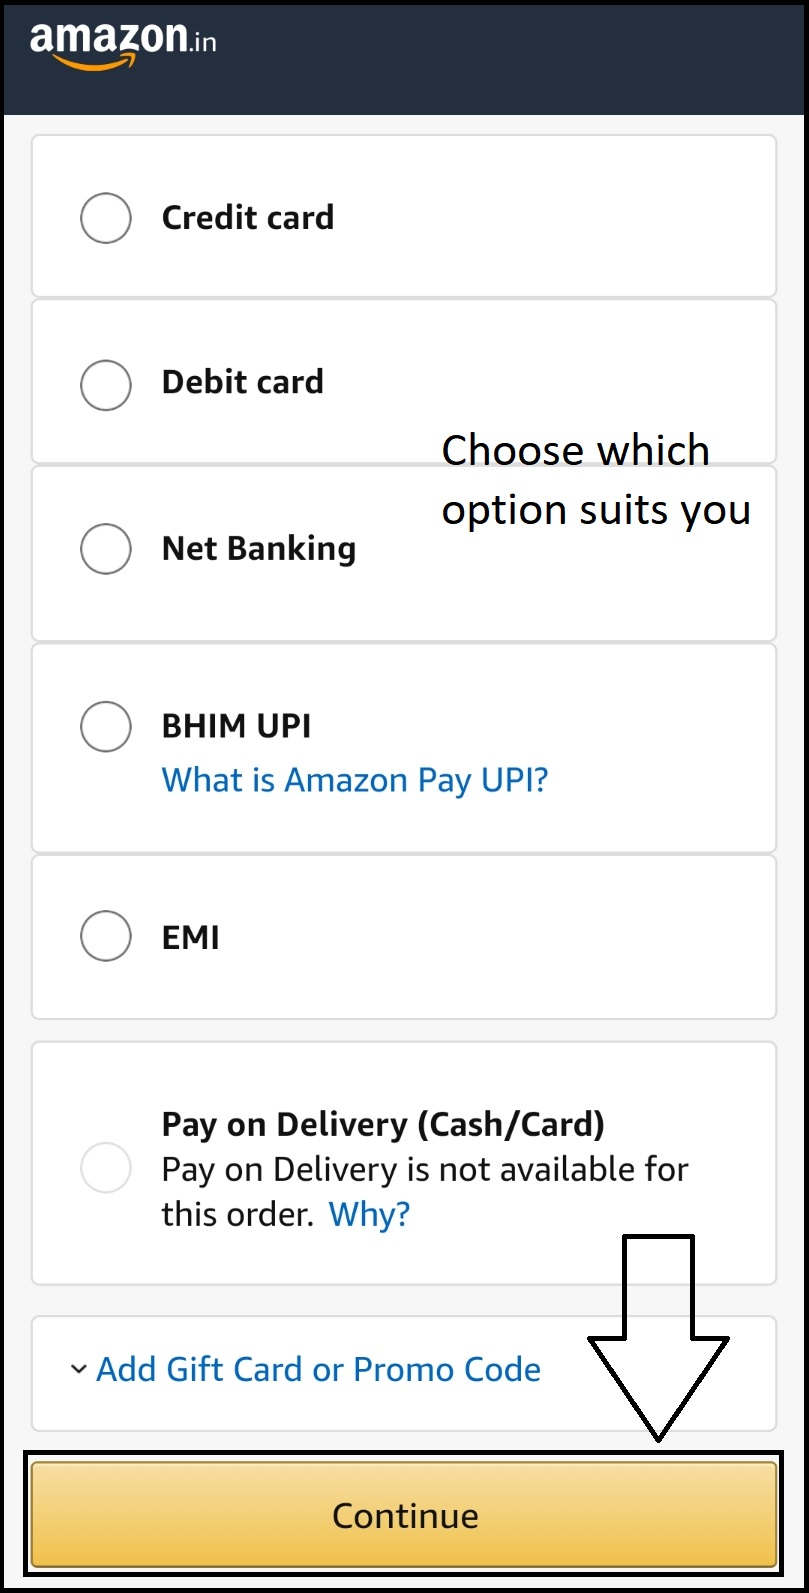 phone number for amazon com to place an order